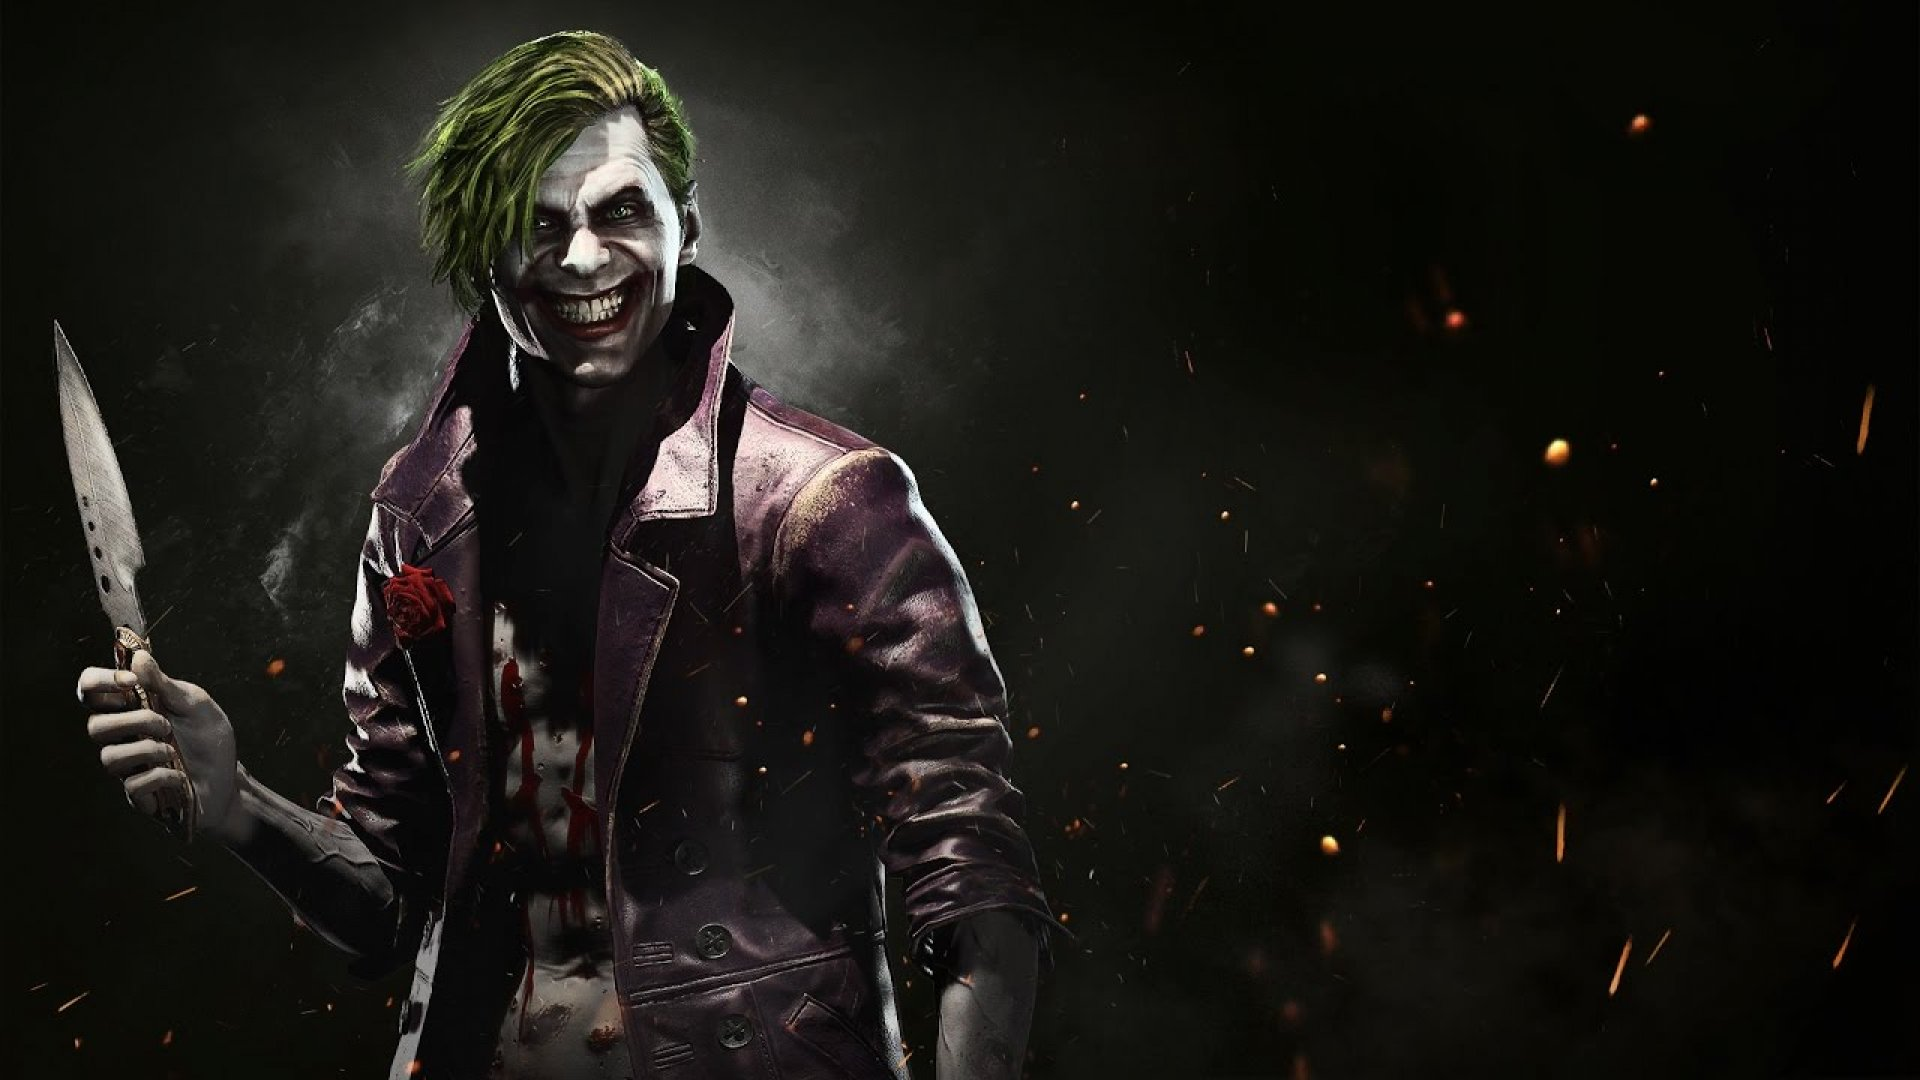 joker injustice 2 hd games 4k wallpapers images backgrounds photos and pictures joker injustice 2 hd games 4k